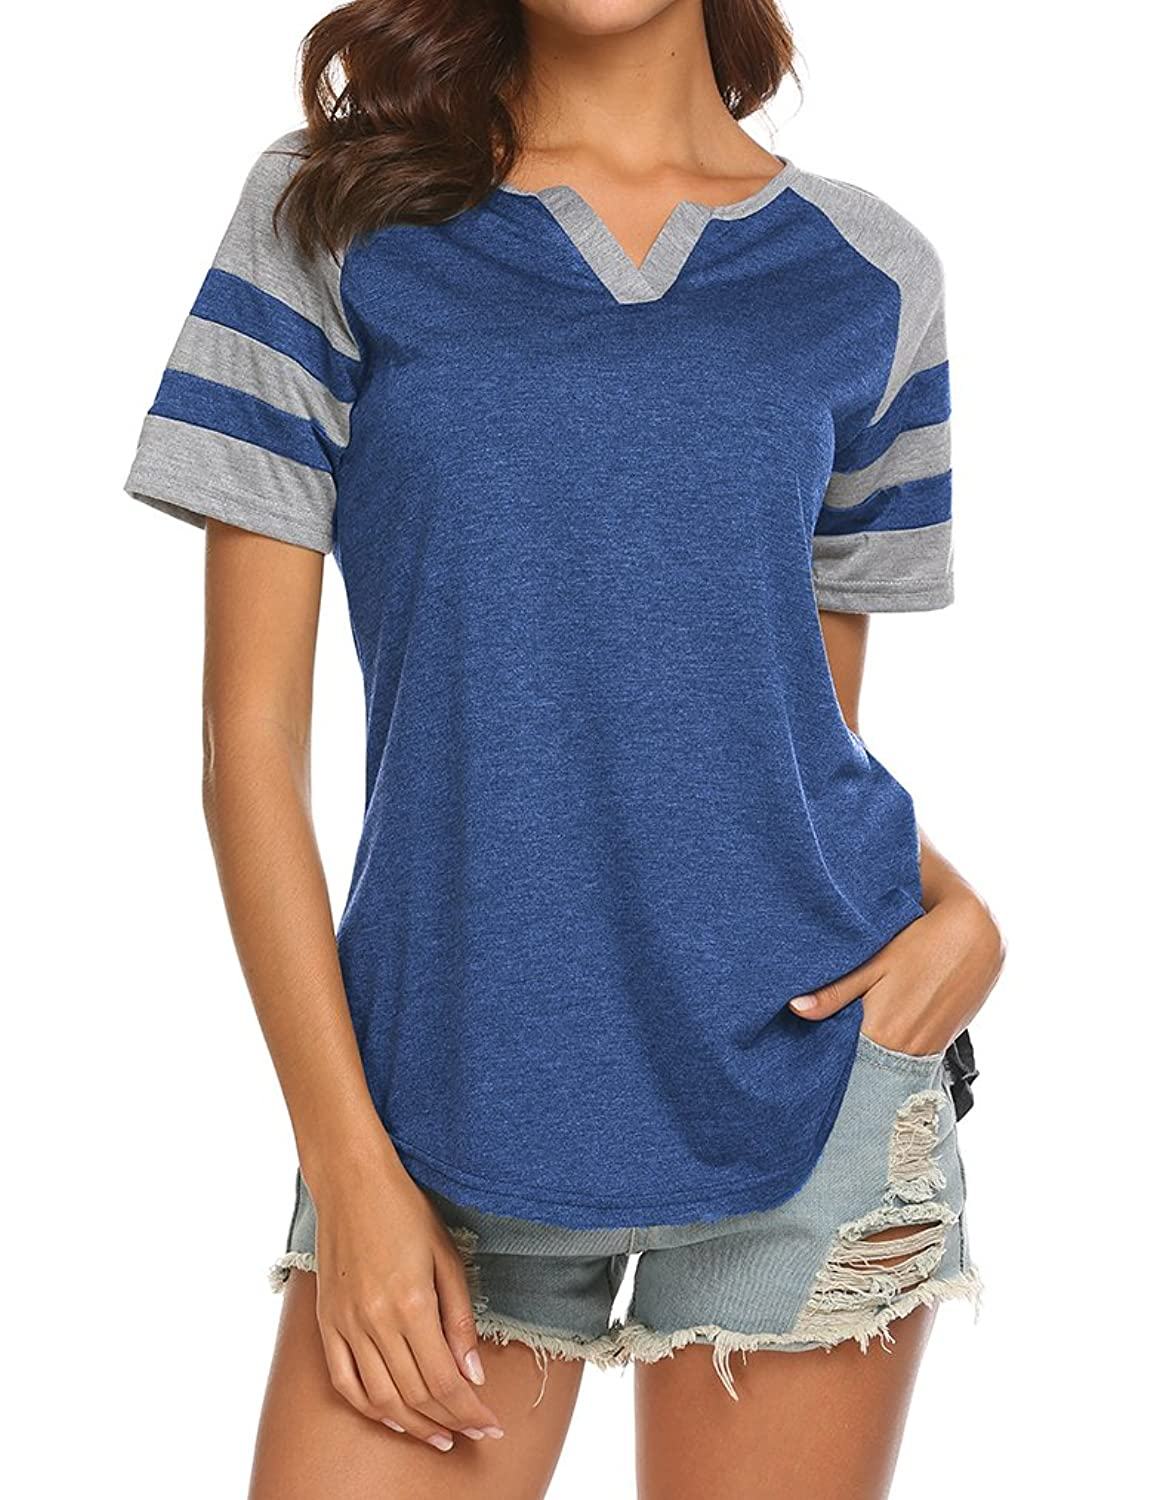 9a4d3fe0f This raglan shirt features notch neck,short sleeve,flowy hem,color block  and loose fit.It is very simple, basic but a must have piece in ...